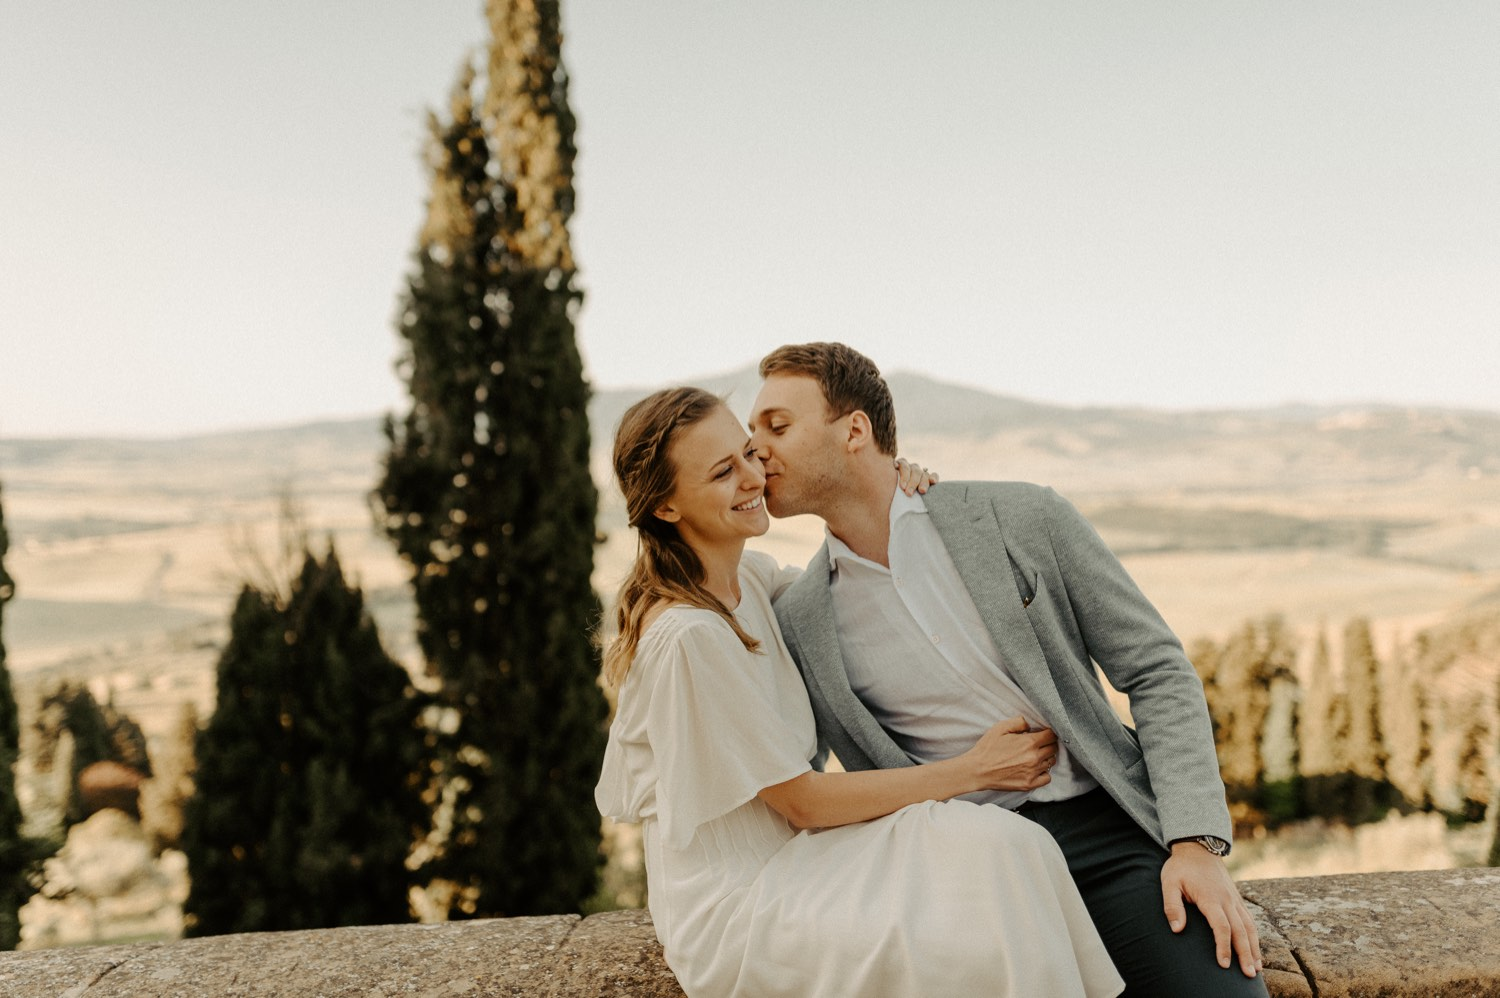 28_ali-dirk-pre-wedding-117_tuscany_siena_province_wedding_italy_photography.jpg